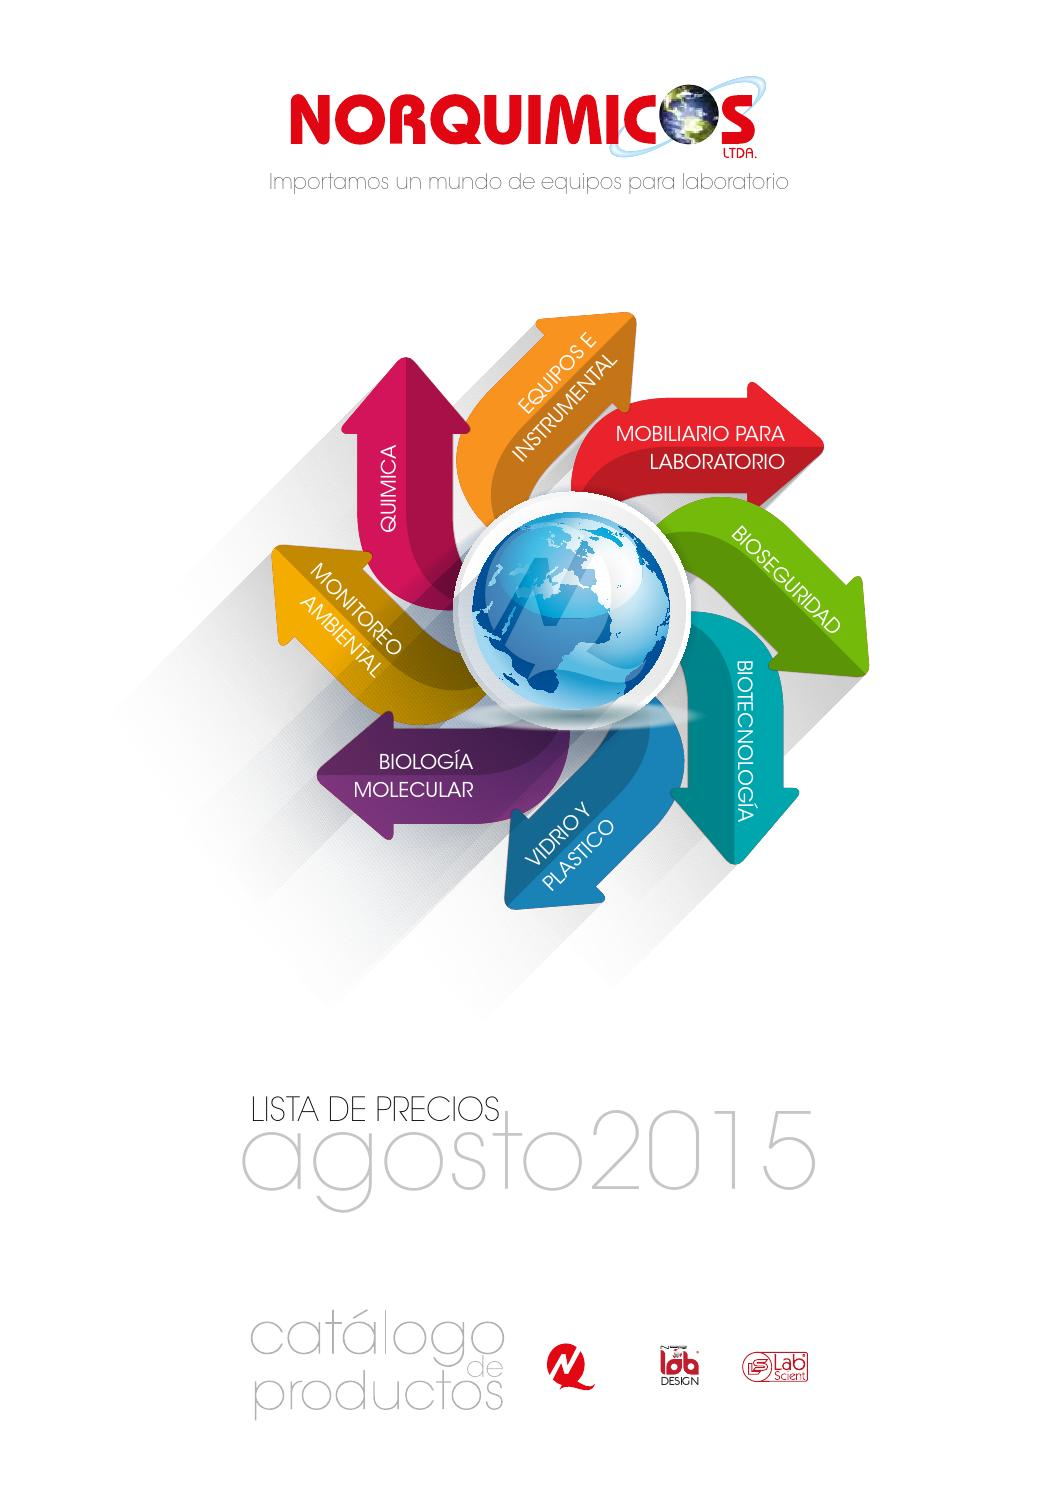 Catalogo agosto 2015 by norquimicos - issuu